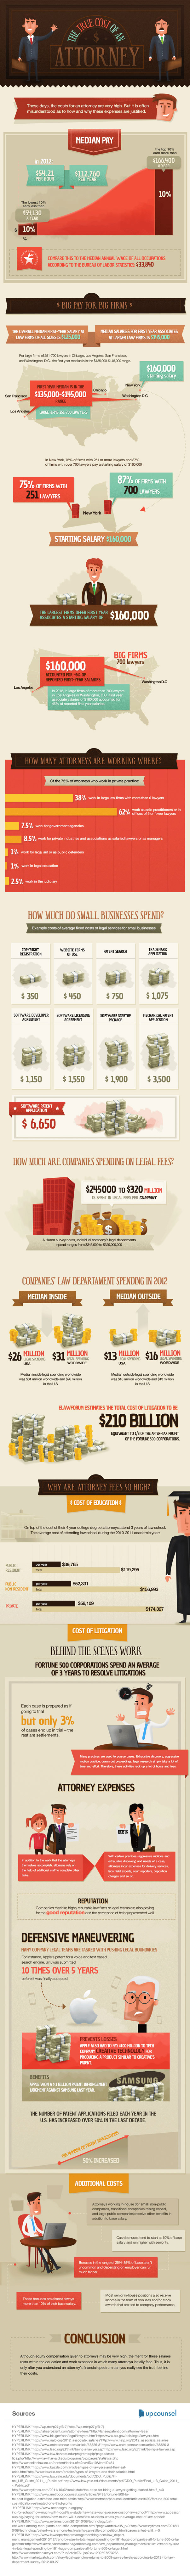 Business Attorney Cost-Infographic